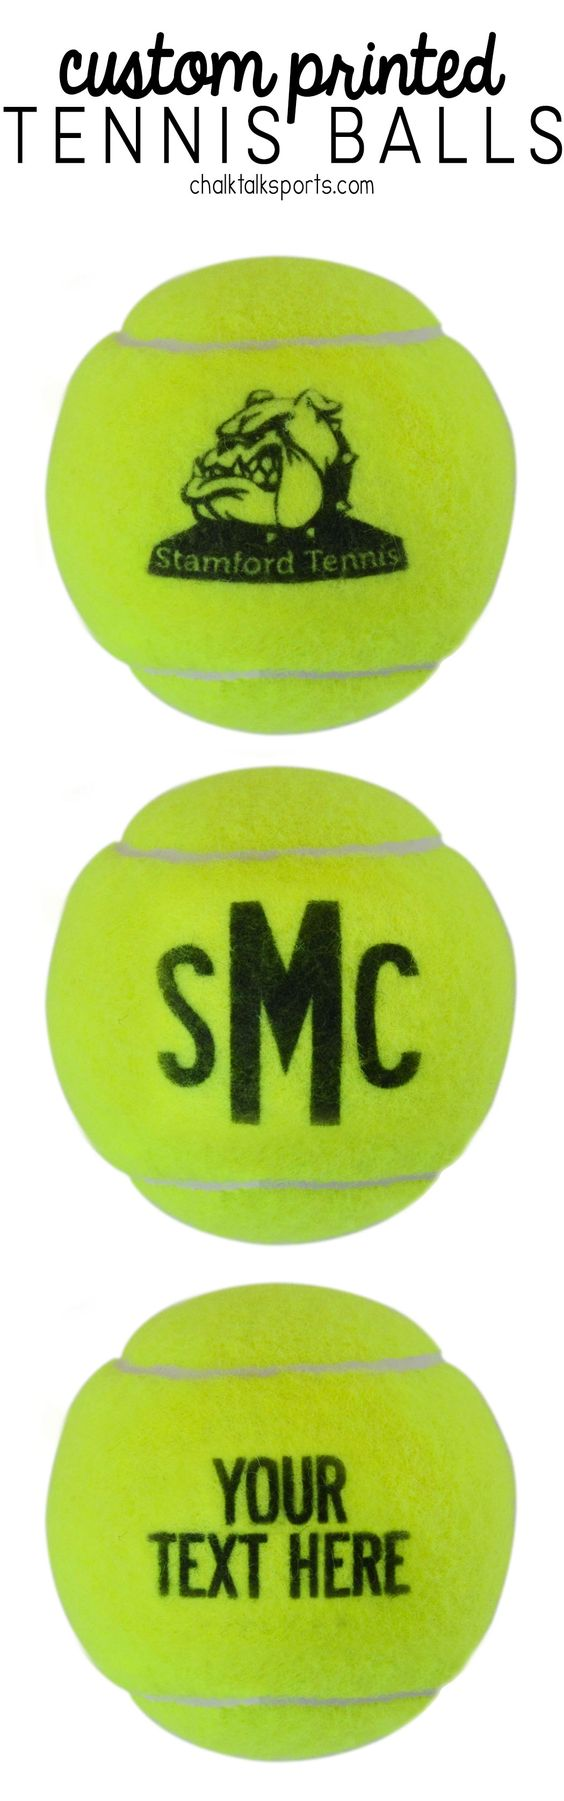 Custom Printed Tennis Balls! Great tennis gift idea for birthdays, team gifts, coach gifts, holidays and more!